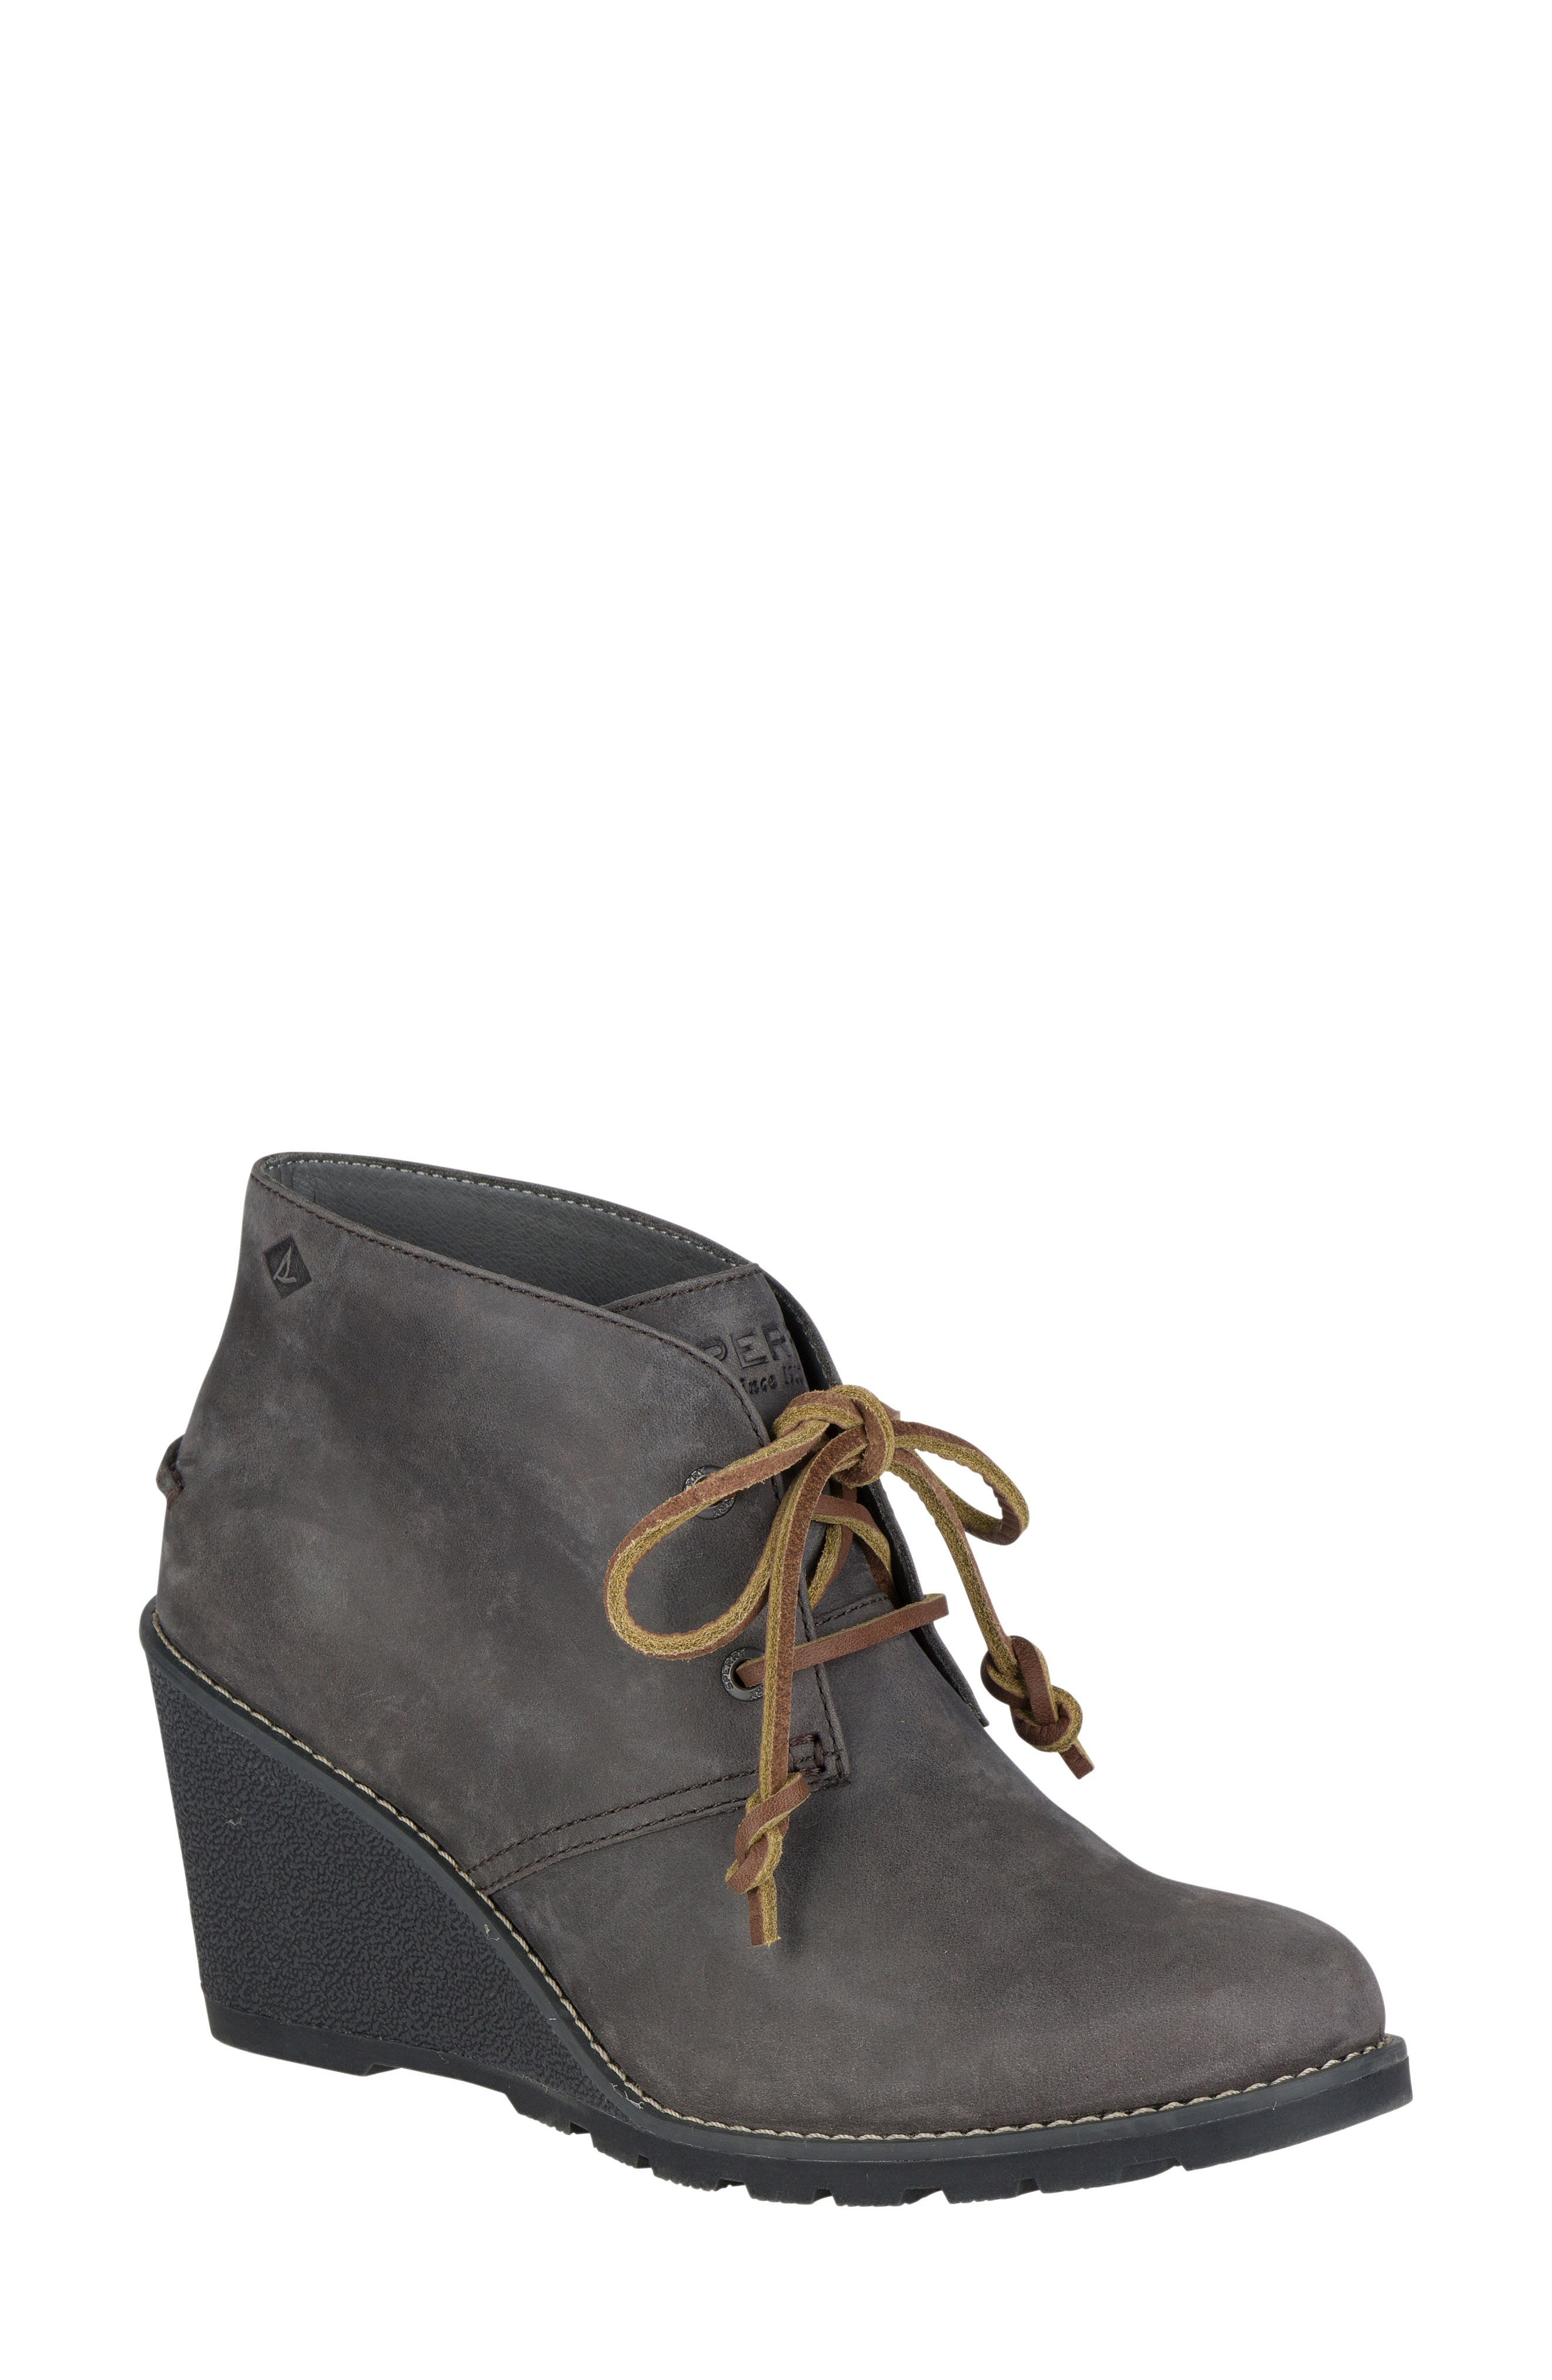 Main Image - Sperry Celeste Lace-Up Bootie (Women)